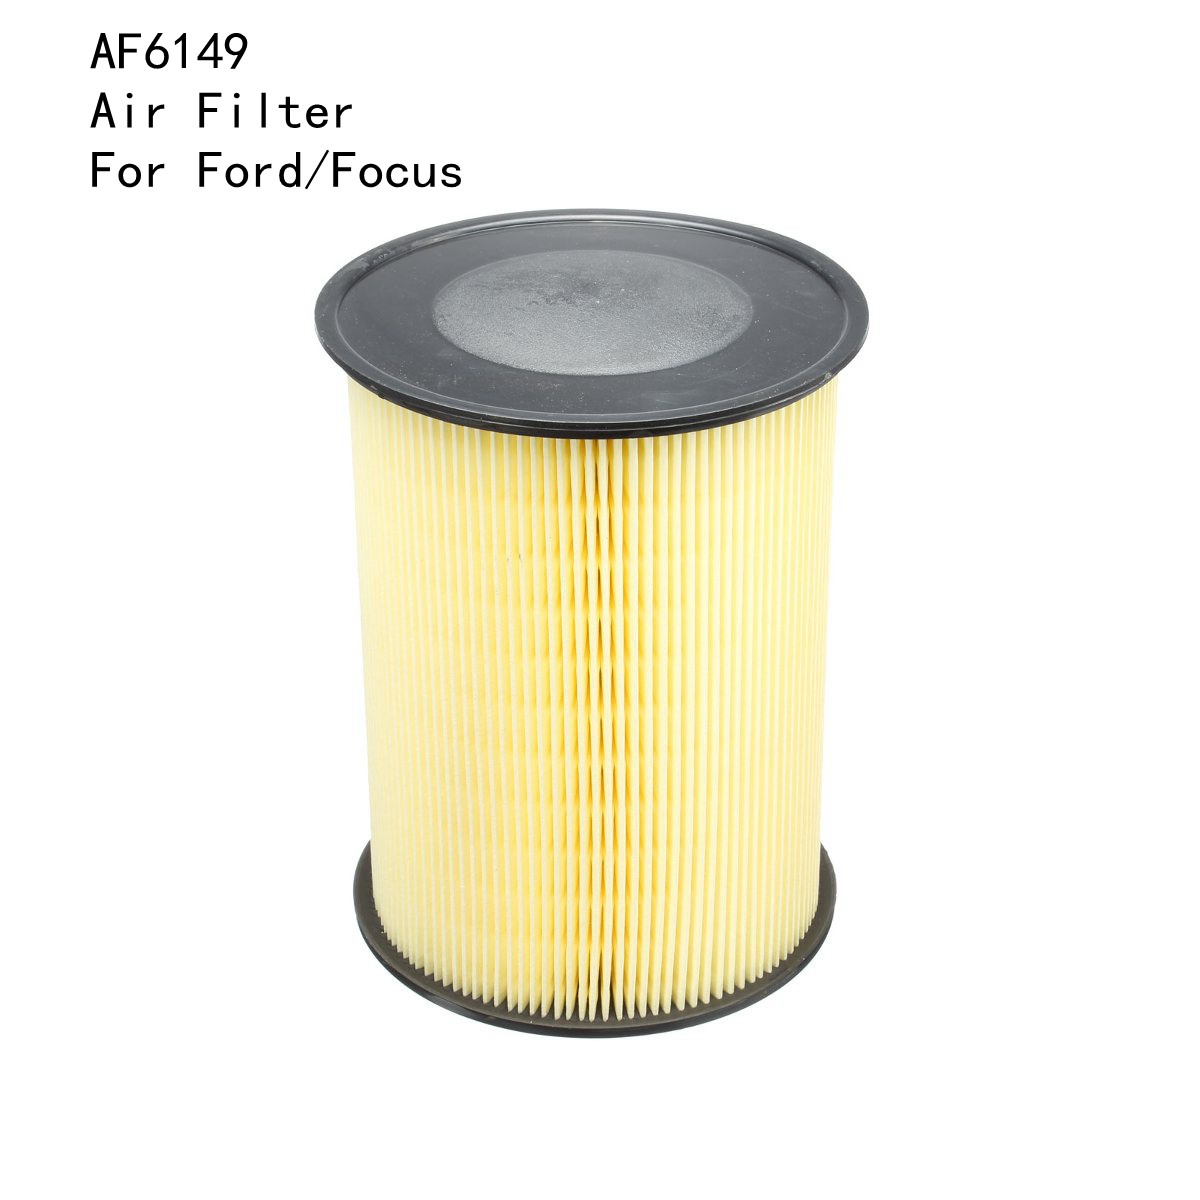 Engine Air Filter Cleaner For Ford For Focus Escape Transit Connect - AF6149Engine Air Filter Cleaner For Ford For Focus Escape Transit Connect - AF6149